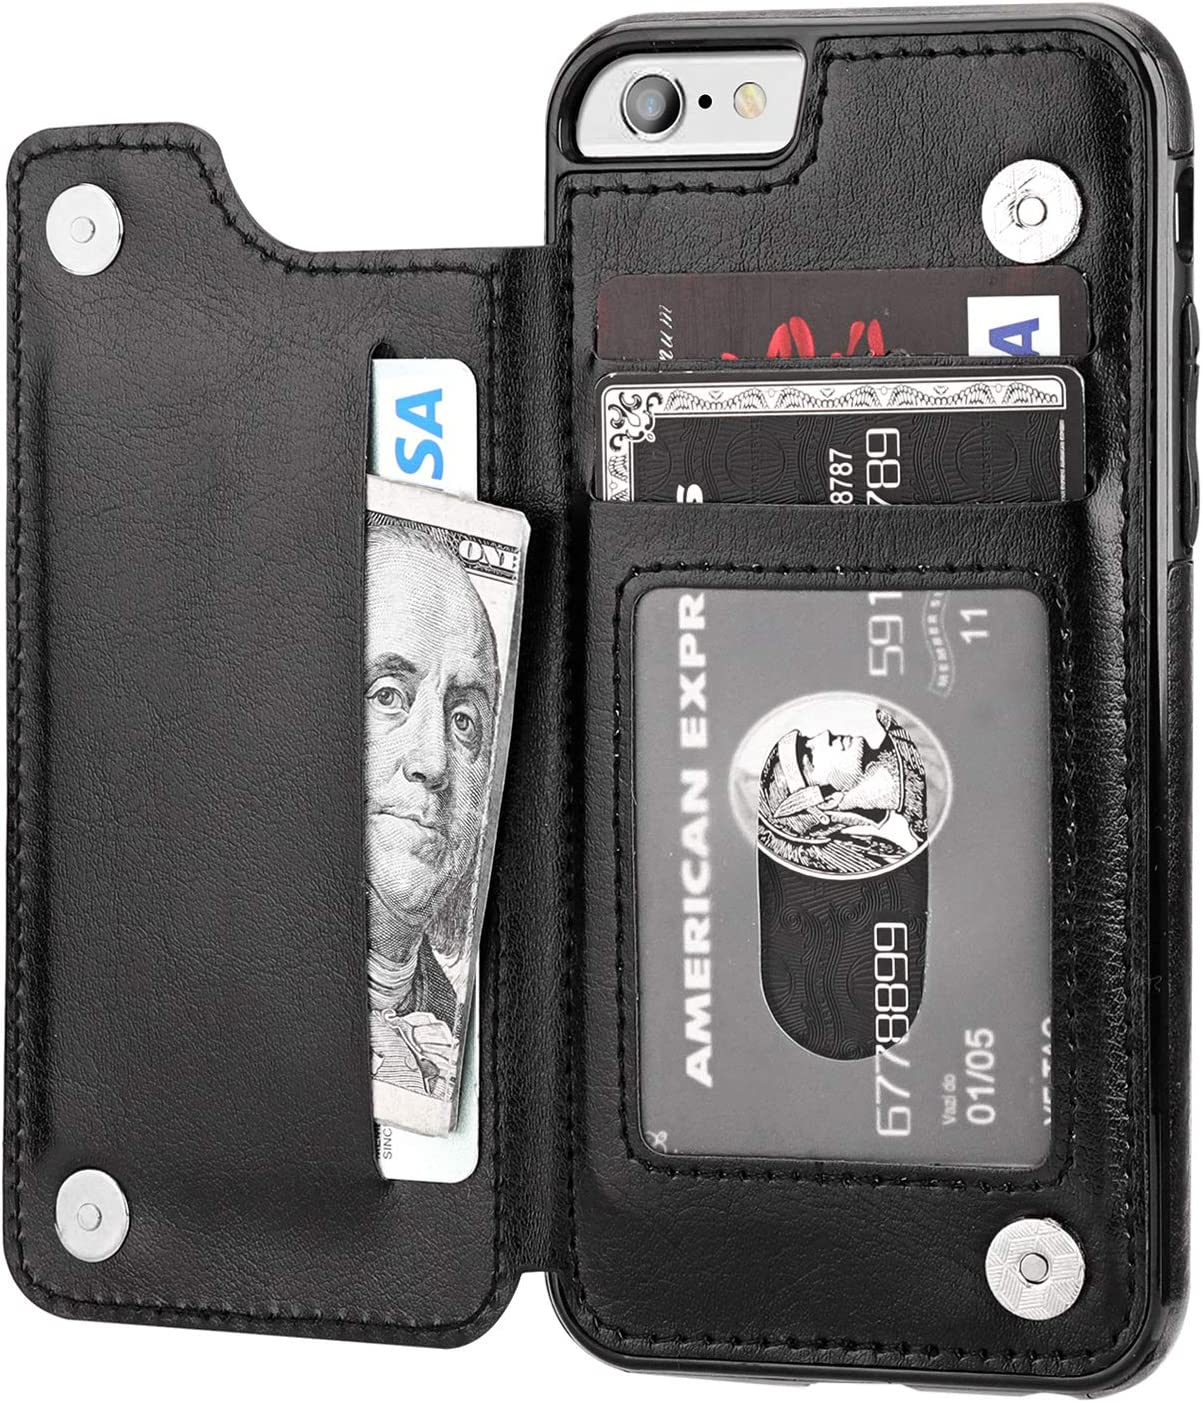 iPhone 6s Wallet Case with Card Holder,OT ONETOP iPhone 6 Case Wallet Premium PU Leather Kickstand Card Slots,Double Magnetic Clasp Durable Shockproof Cover 4.7 Inch(Black)